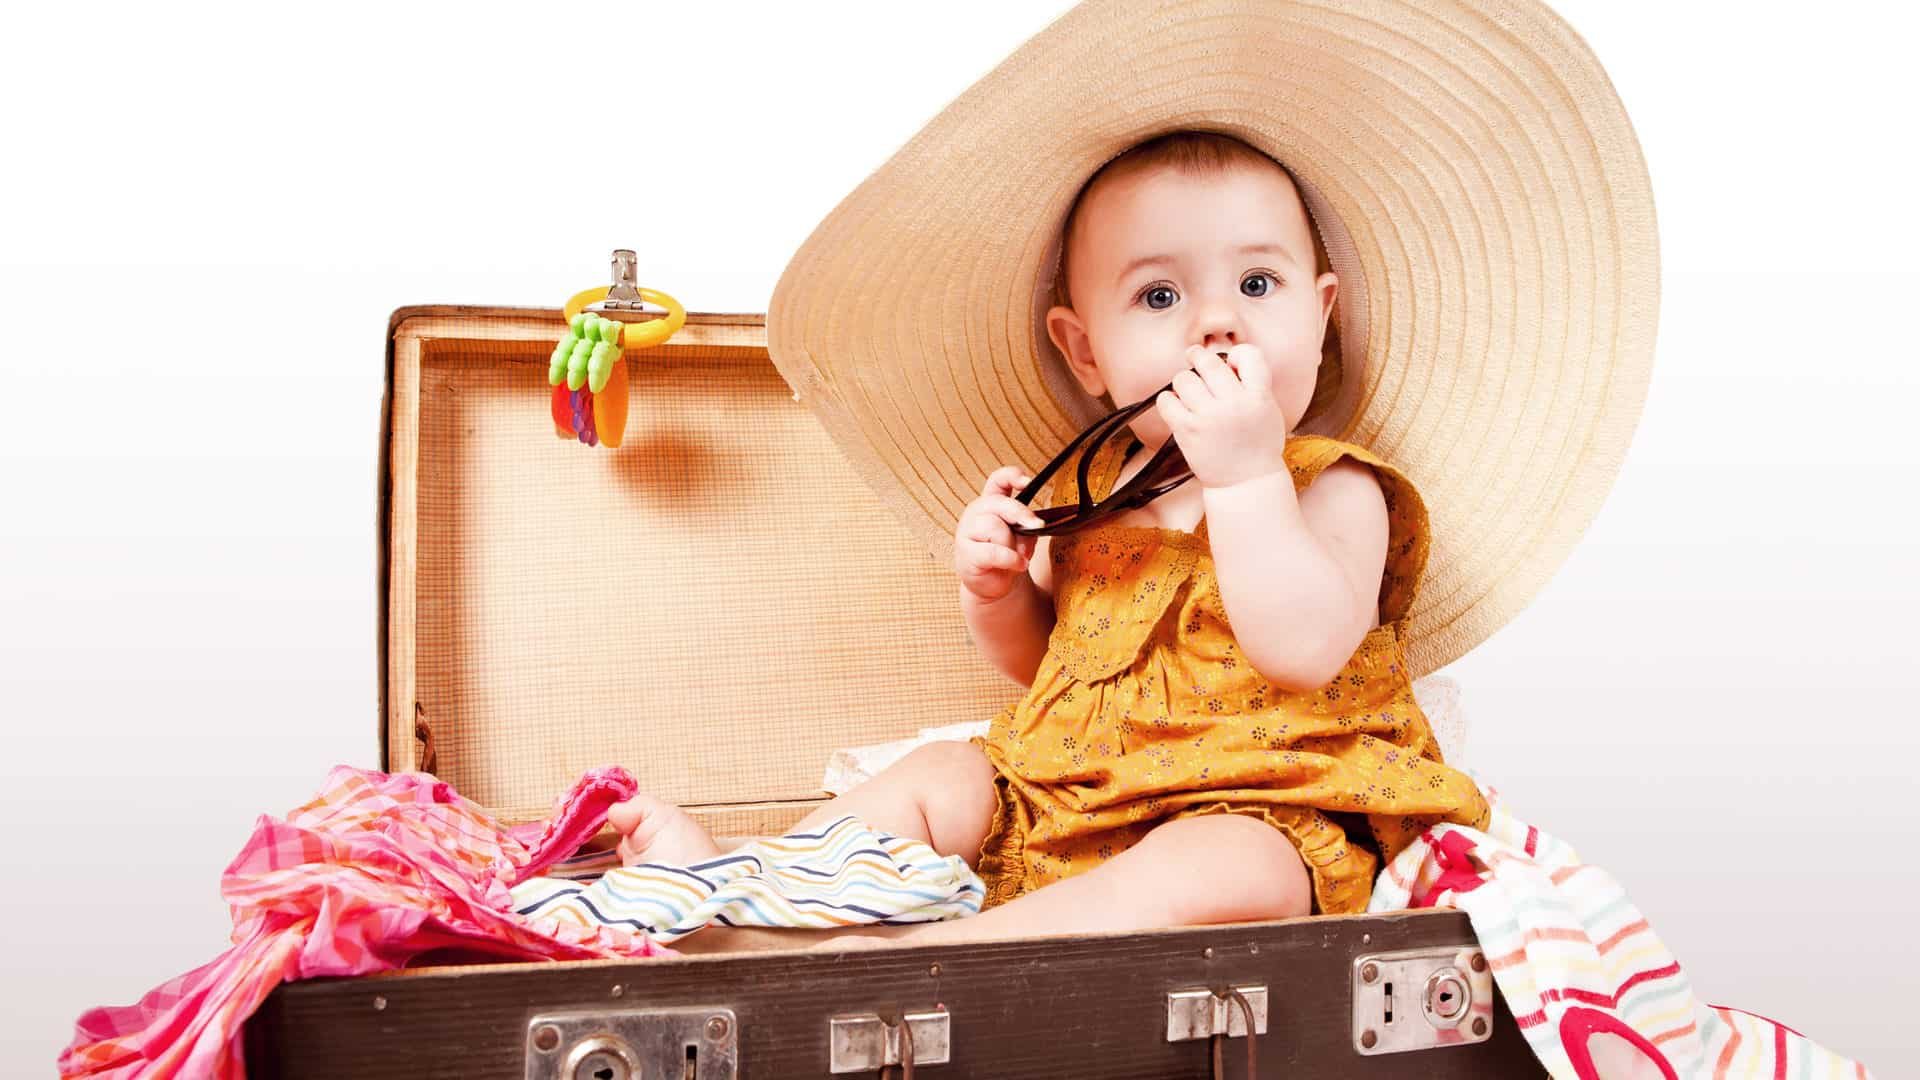 Cute baby with big summer sombrero sitting in an old suitcase ready to travel